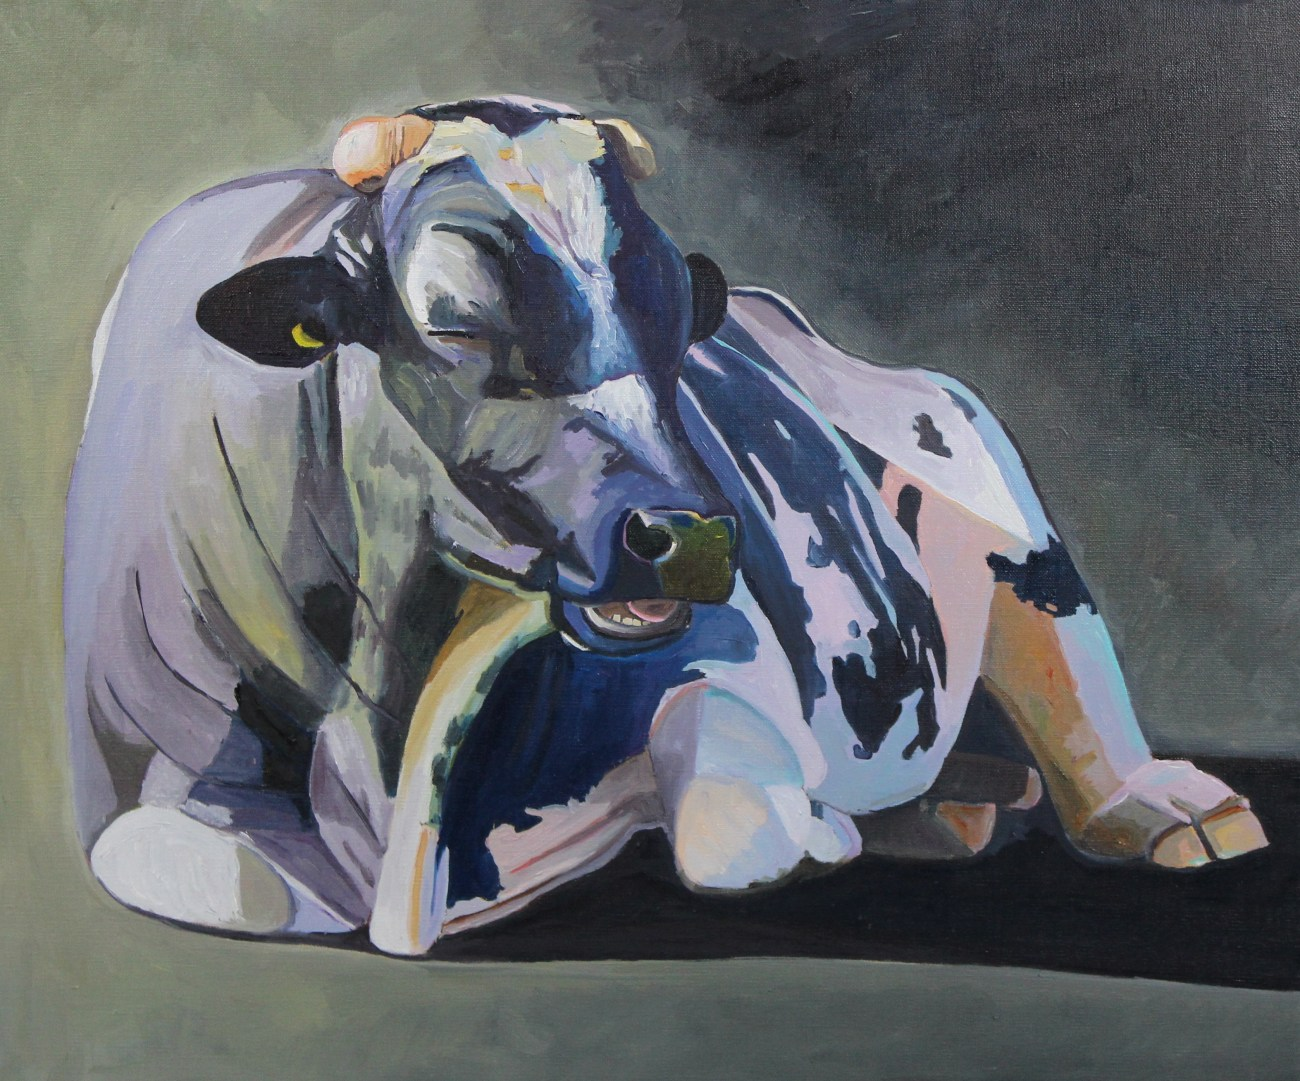 Oil painting of a Gower Bull by Emma Cownie